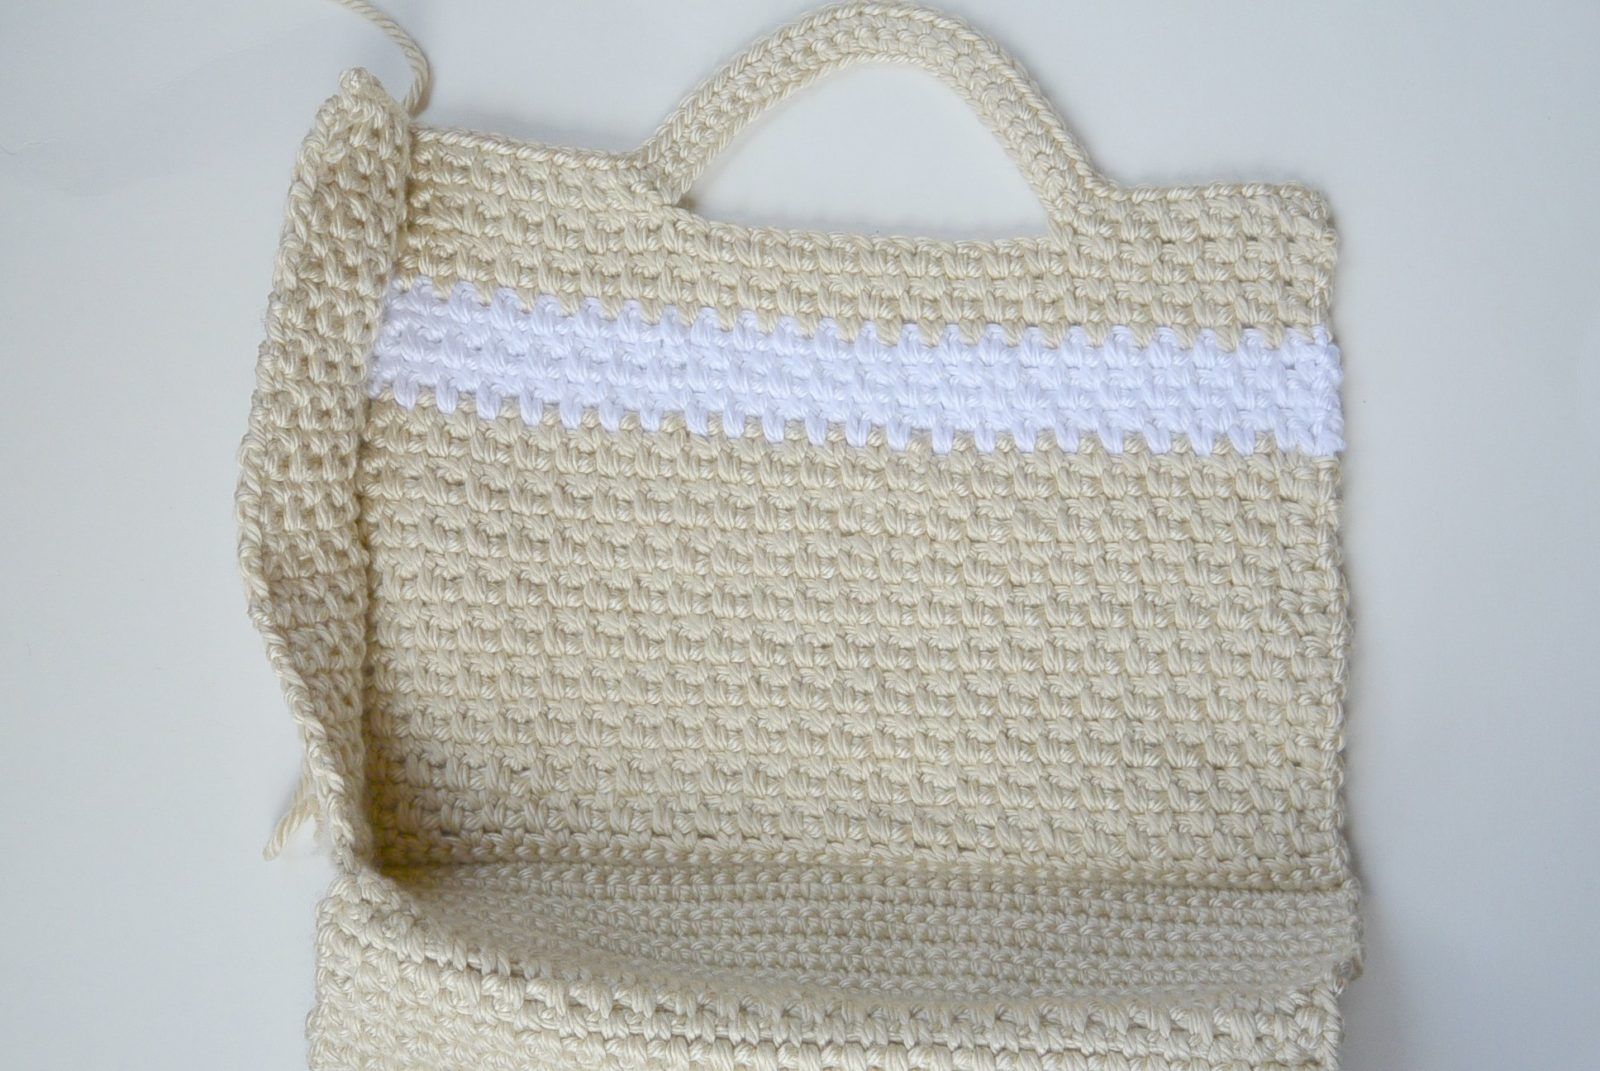 Simple Crochet Bag Pattern : Big Easy (and stylish) Crochet Bag Pattern - Mama In A Stitch